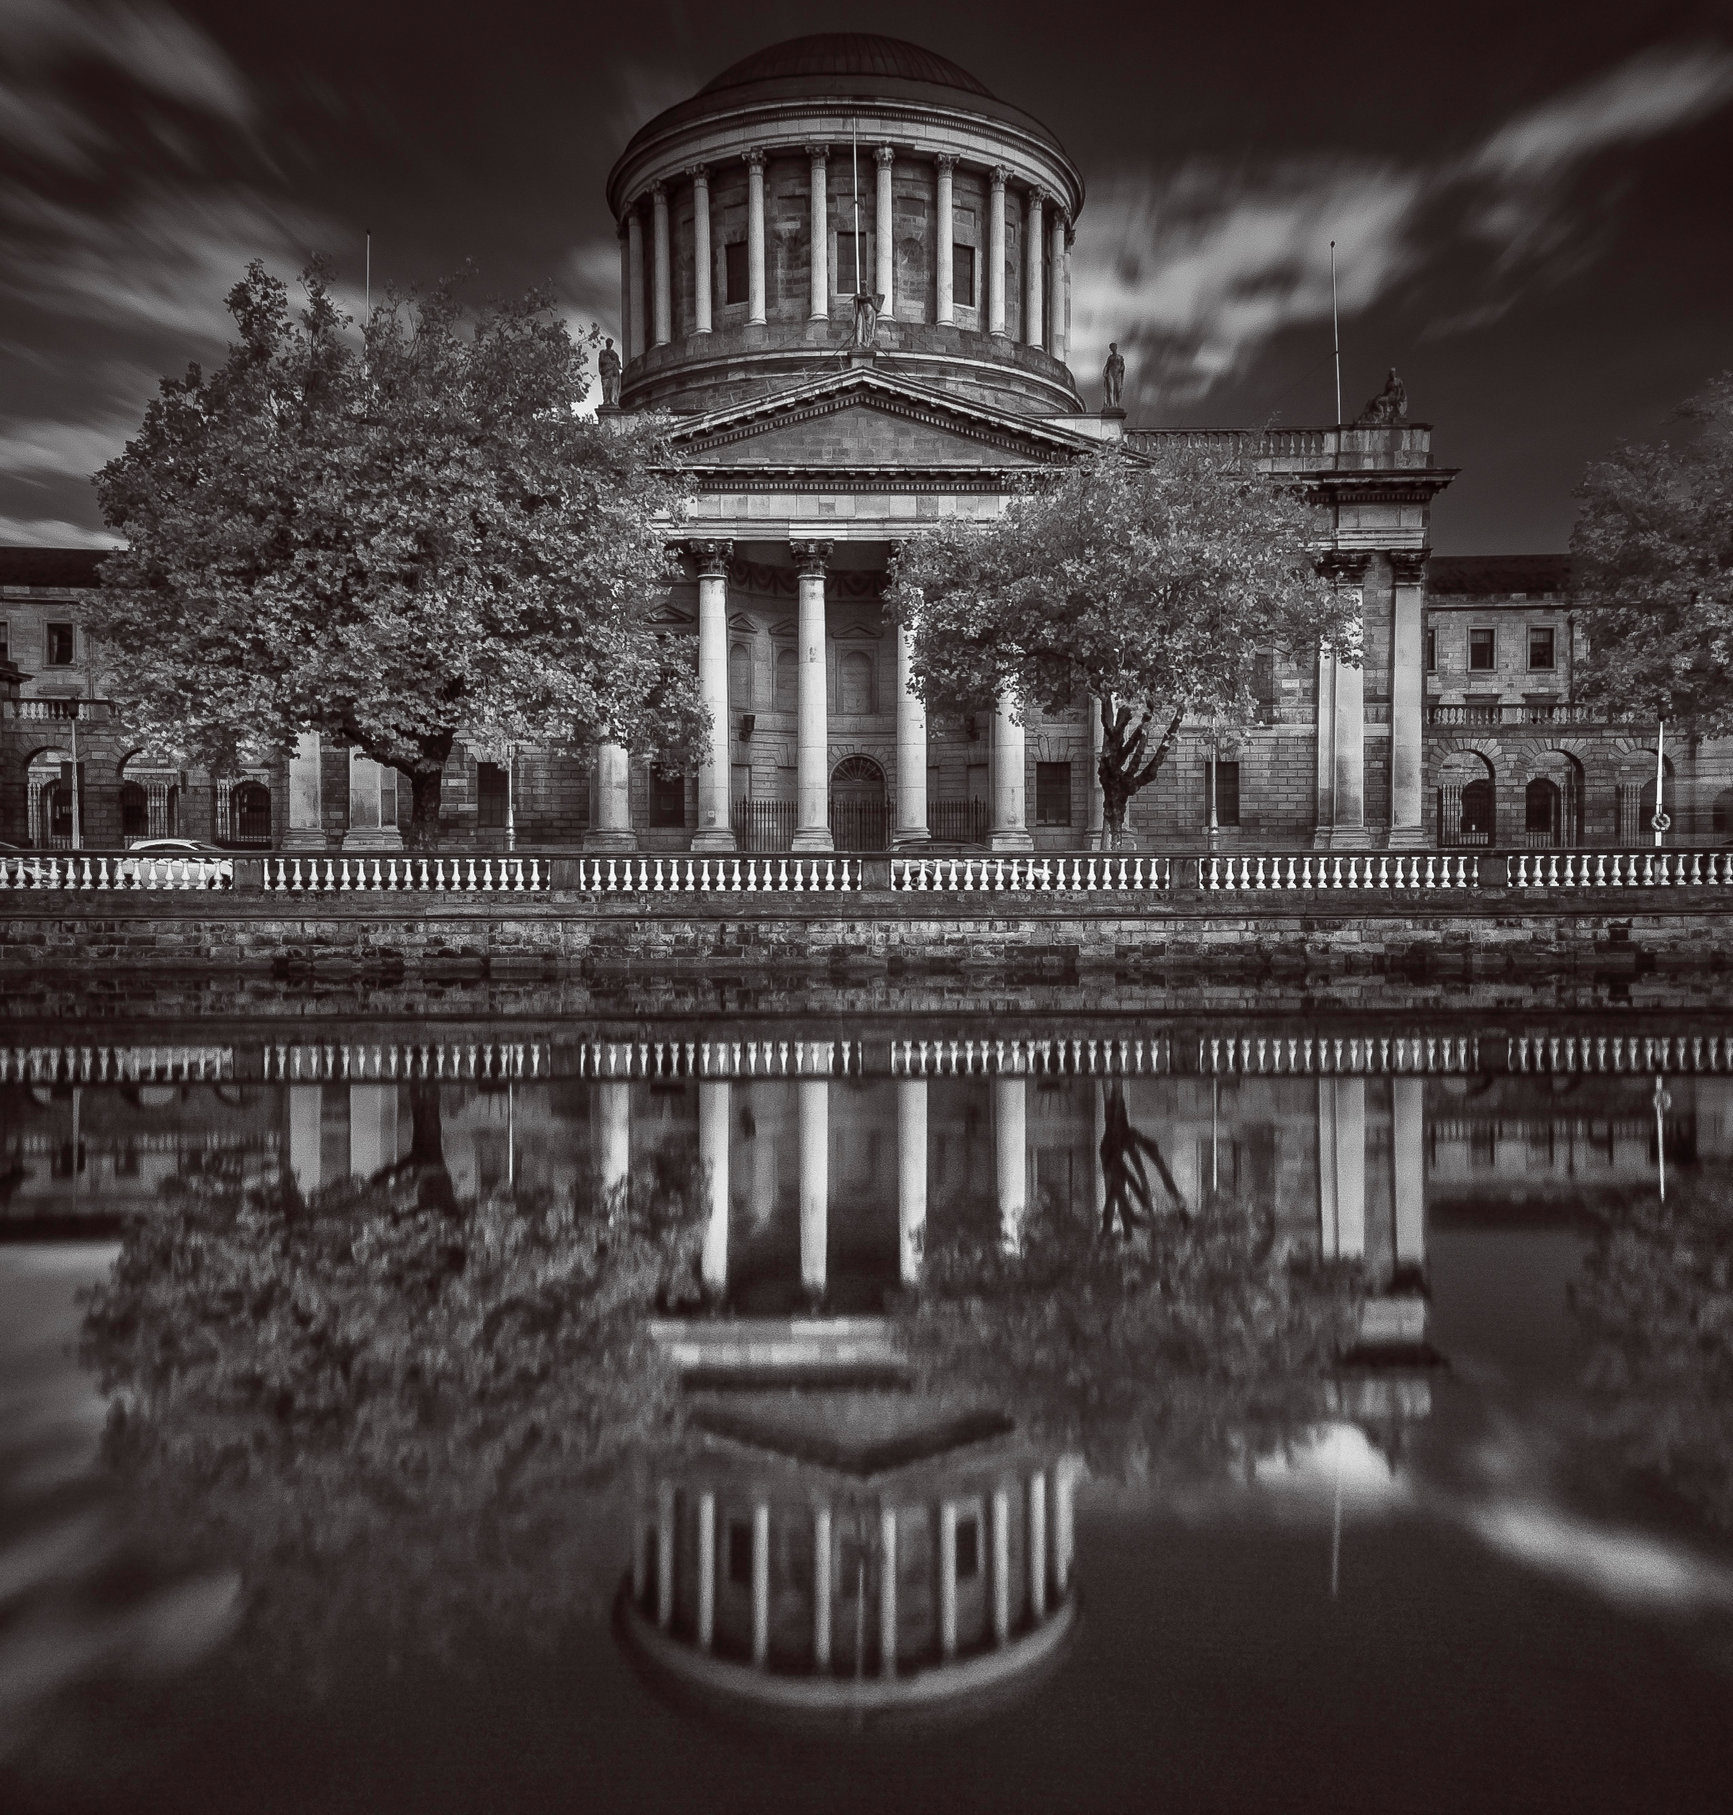 Four courts Reflection Square final.jpg